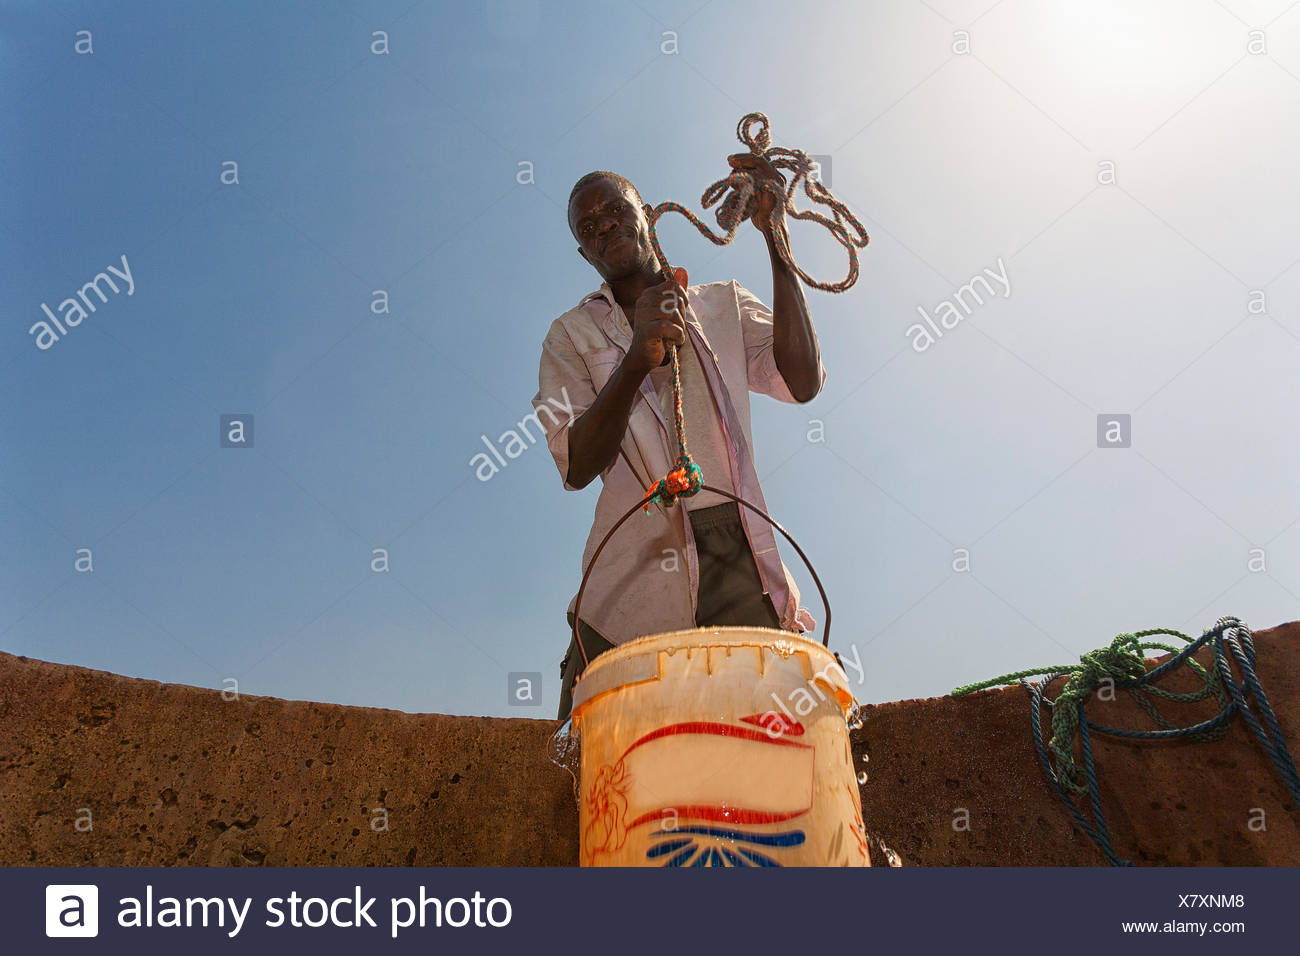 man fetching water from a well in the sahel region of the Senegal river, Senegal - Stock Image